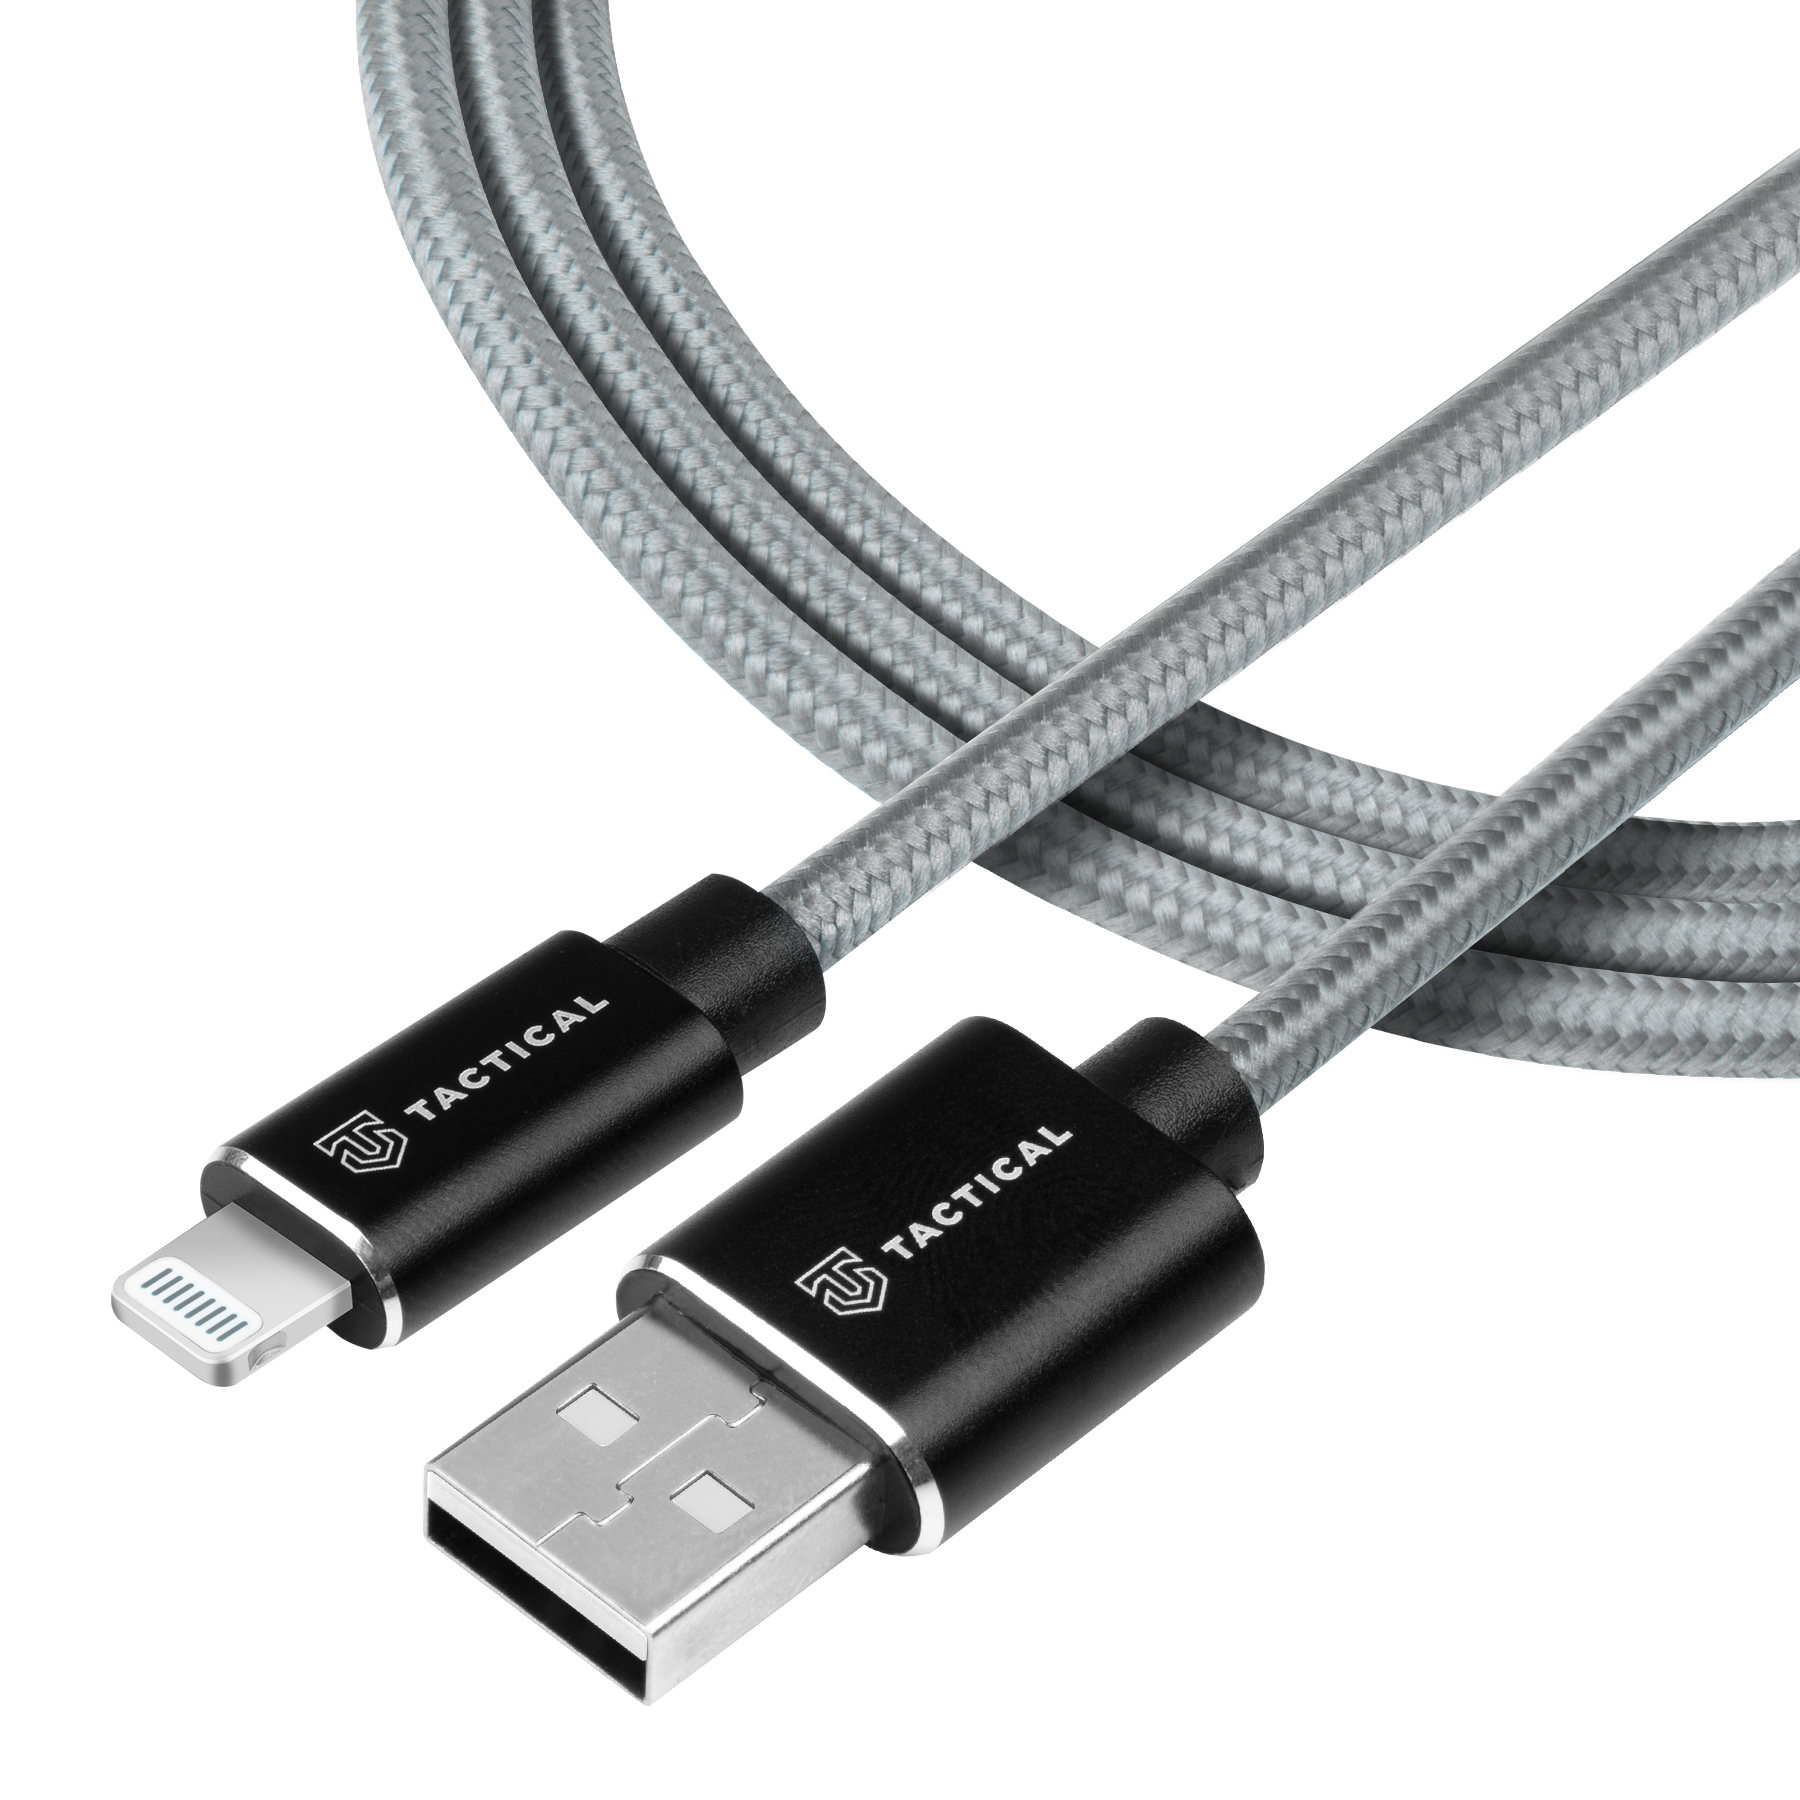 Tactical Fast Rope Aramid Cable USB-A/Lightning MFI 1m Grey 8596311153174